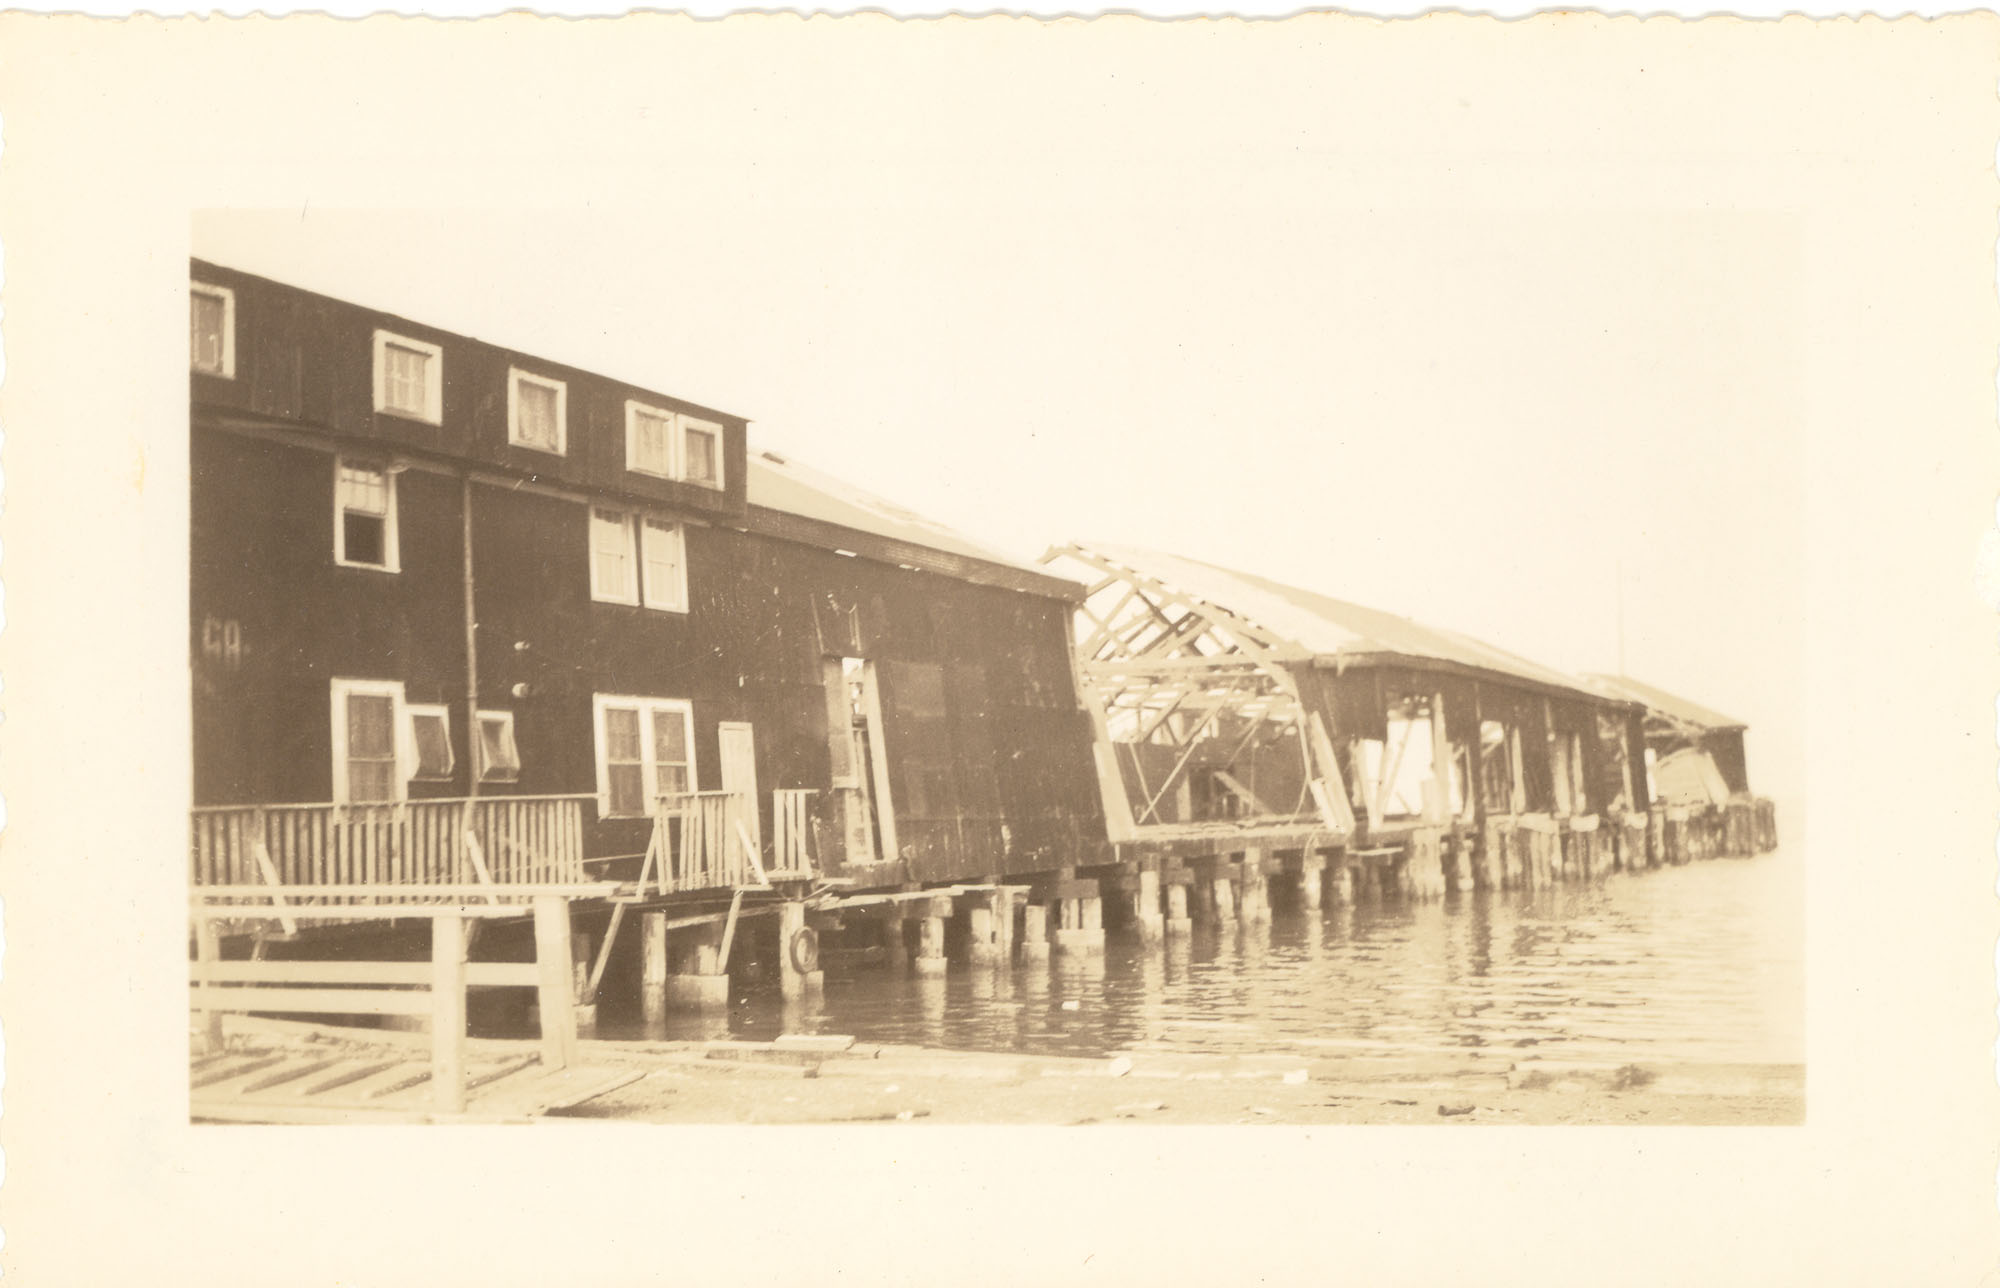 United Fruit Company Dock After the 1938 Tornadoes